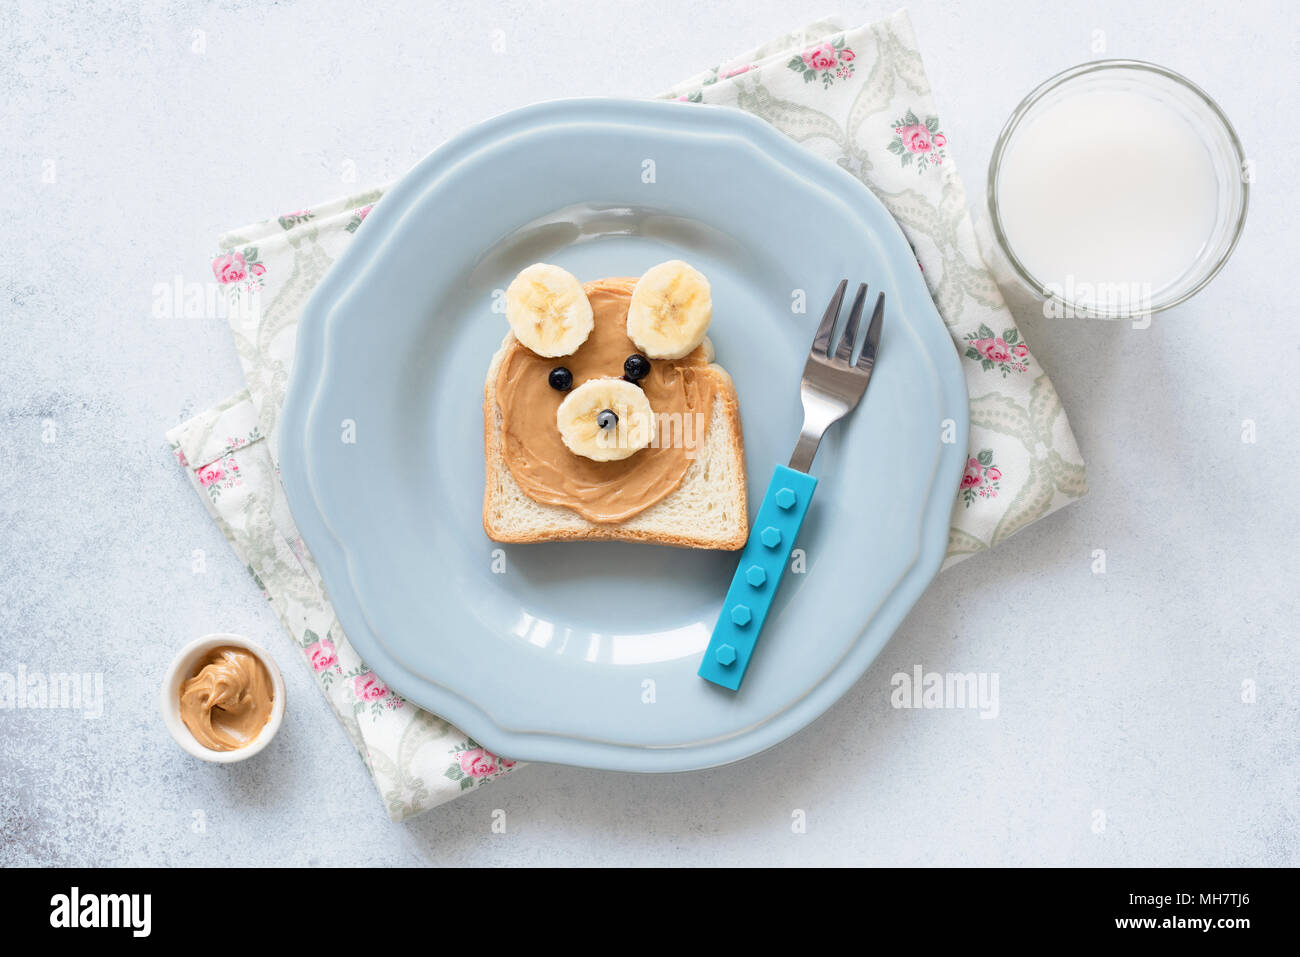 Banana peanut butter toast on a blue plate, meal for kids. Cute funny bear shaped animal toast with nut butter and banana. School lunch for kids. Heal - Stock Image